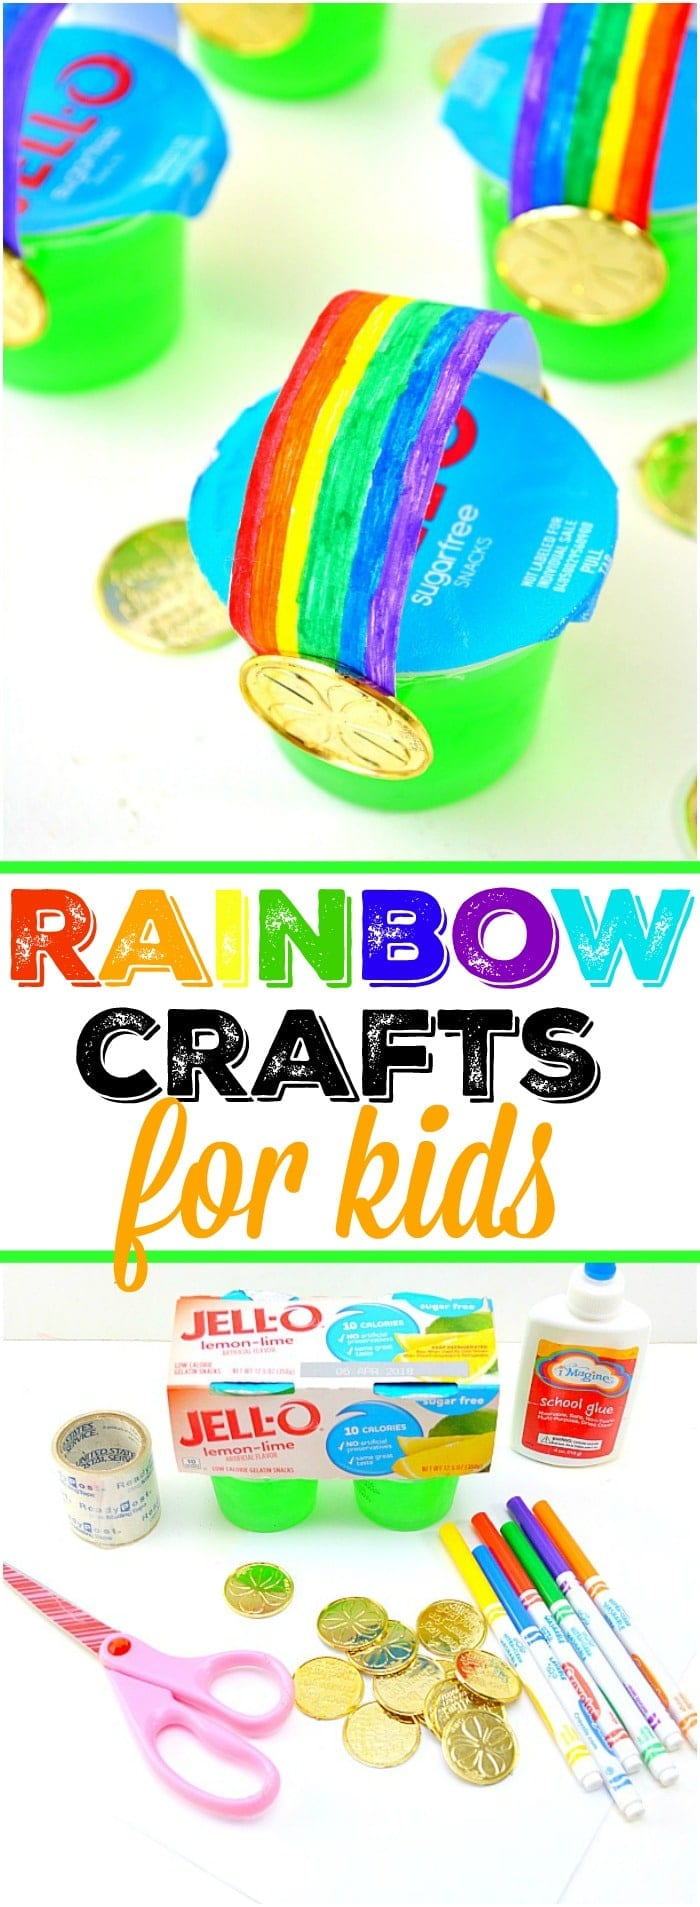 Here are some cute St. Patrick's Day activities for Kindergarten and elementary students to make! From treats to rainbow crafts fit for any little leprechaun these are easy to make and don't cost a lot of money either. Let us know which rainbow craft is your favorite! #stpatricksday #craft #crafts #rainbow #easy #cheap #green